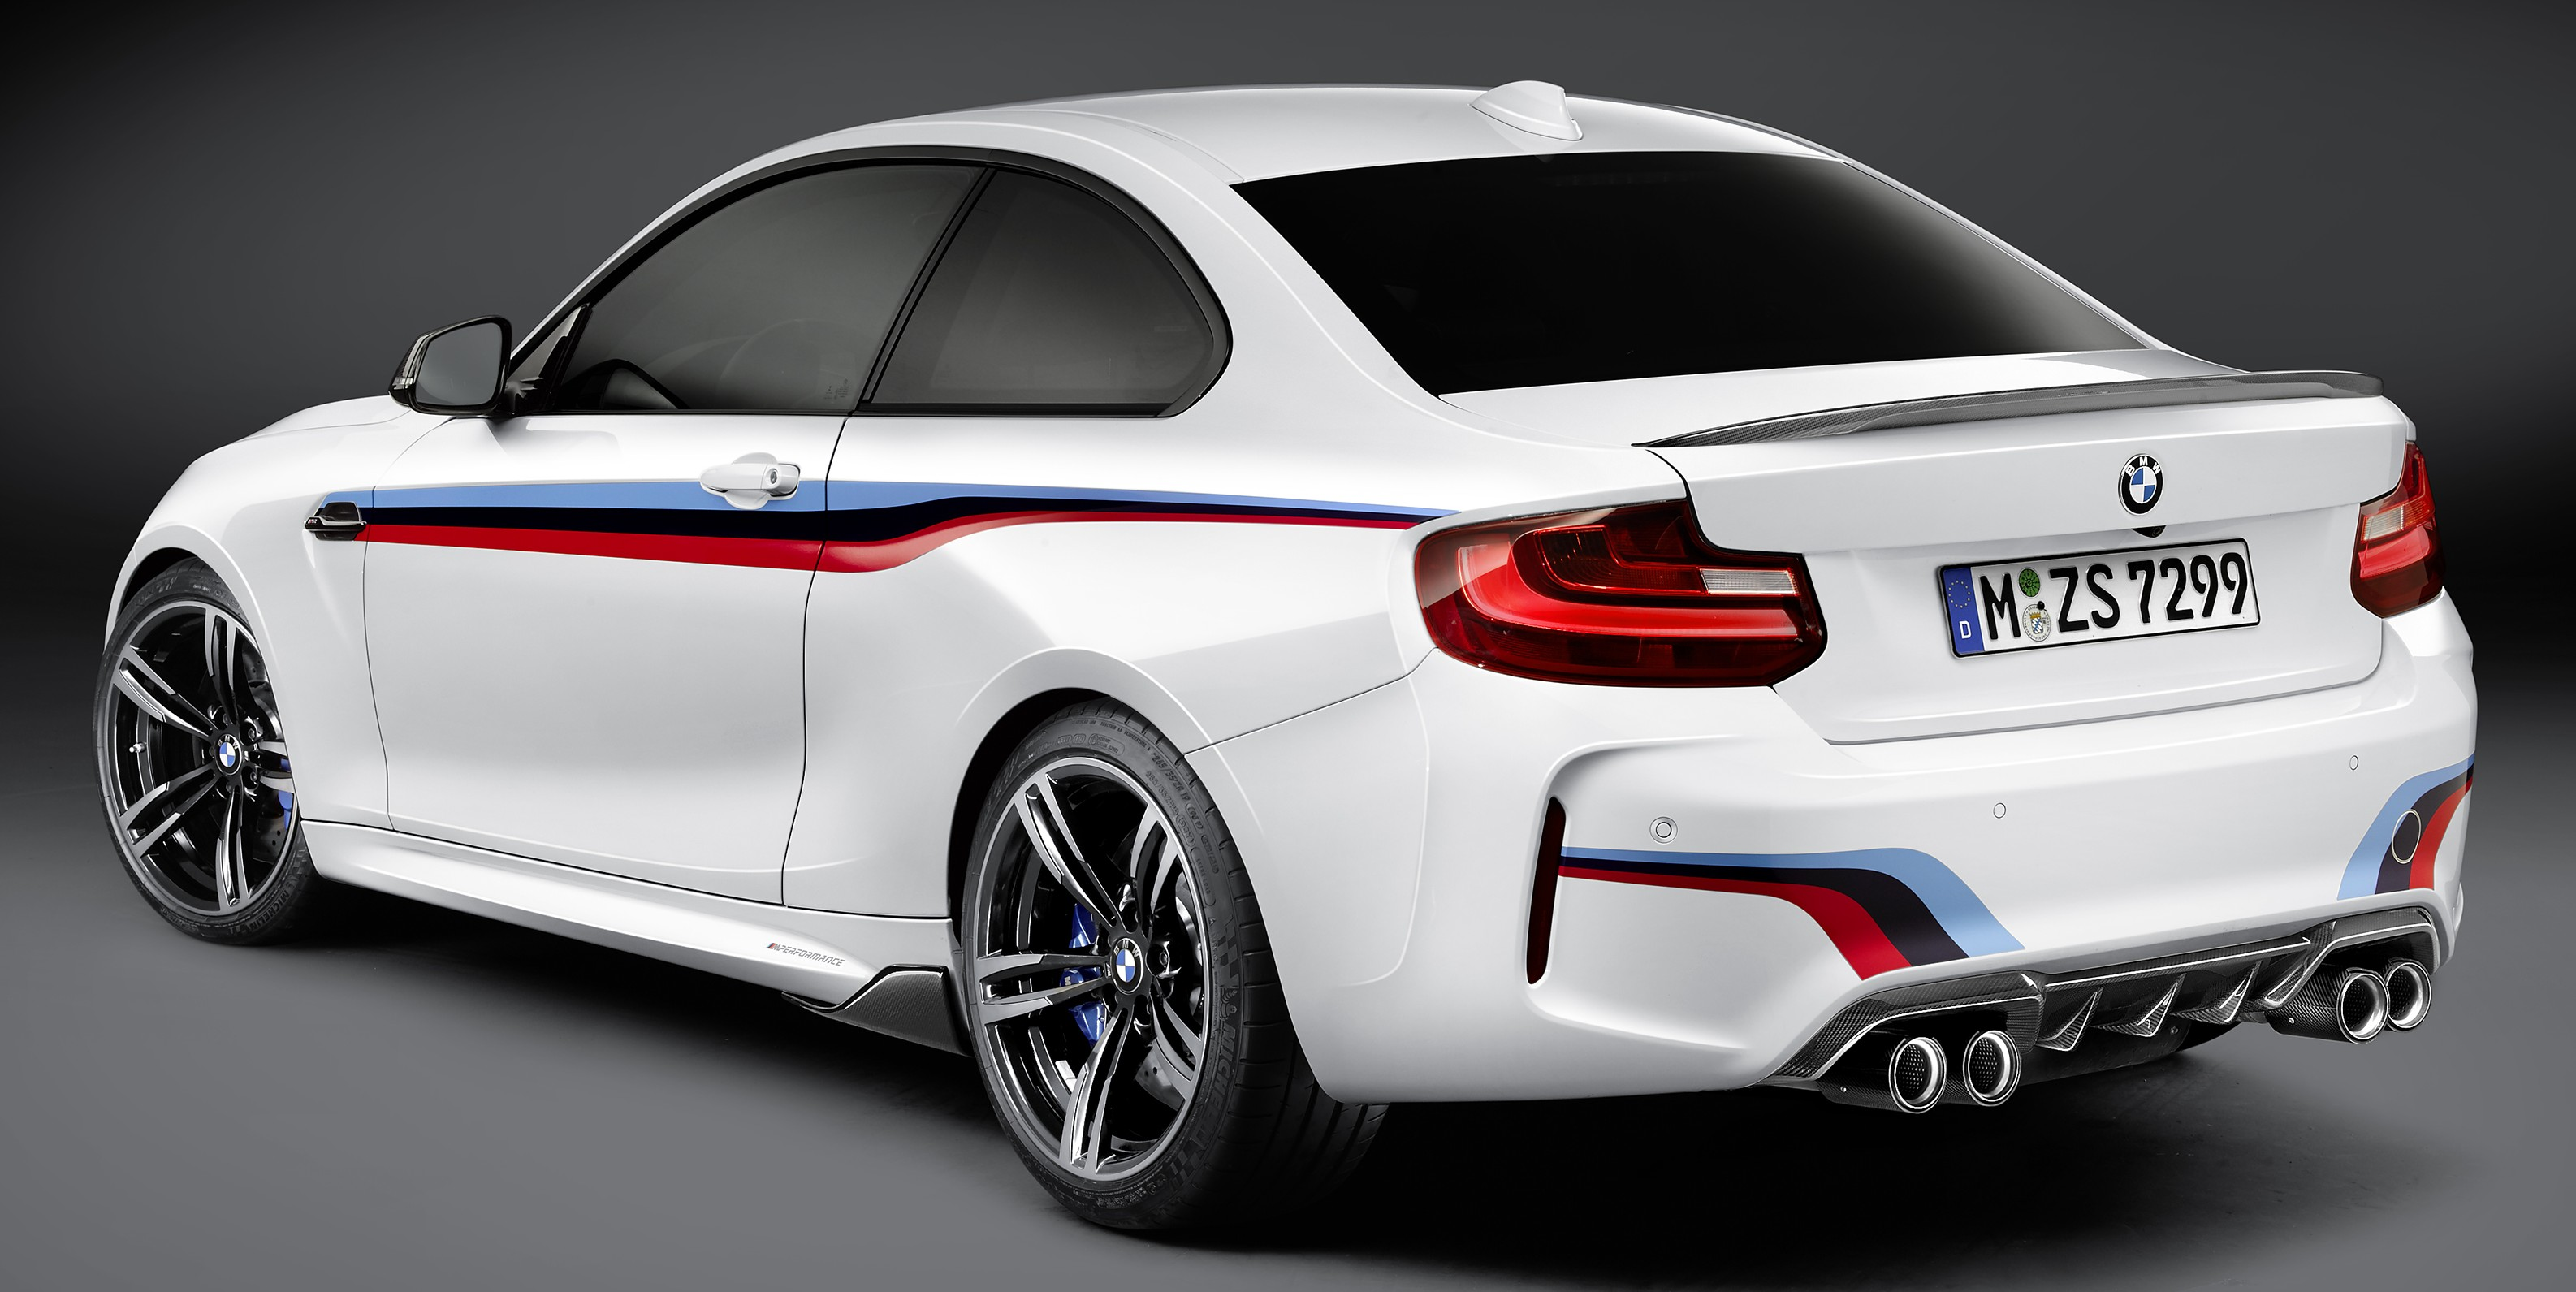 privacy with Bmw M2 Coupe M Performance Parts 2 on 6249586679 moreover Playstation 4 Interface Images further Blauwe Lucht likewise Representation further Evening Beach.